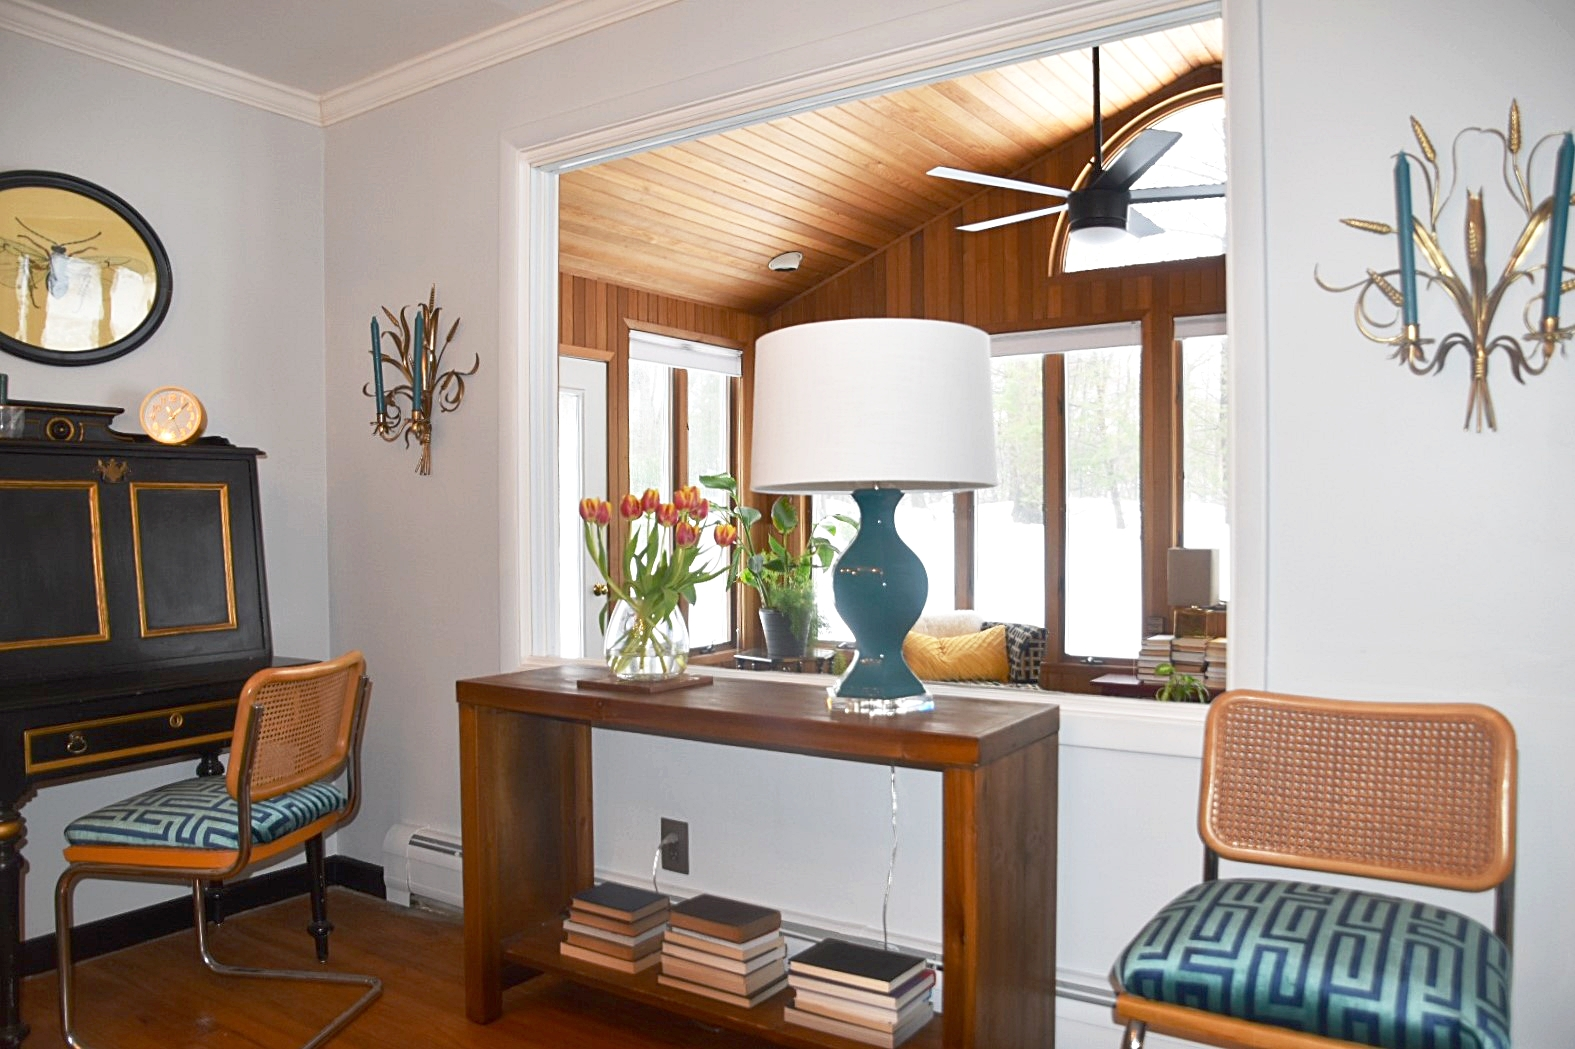 Adding a large lamp that you would normally place in a living room, immediately provides warmth.